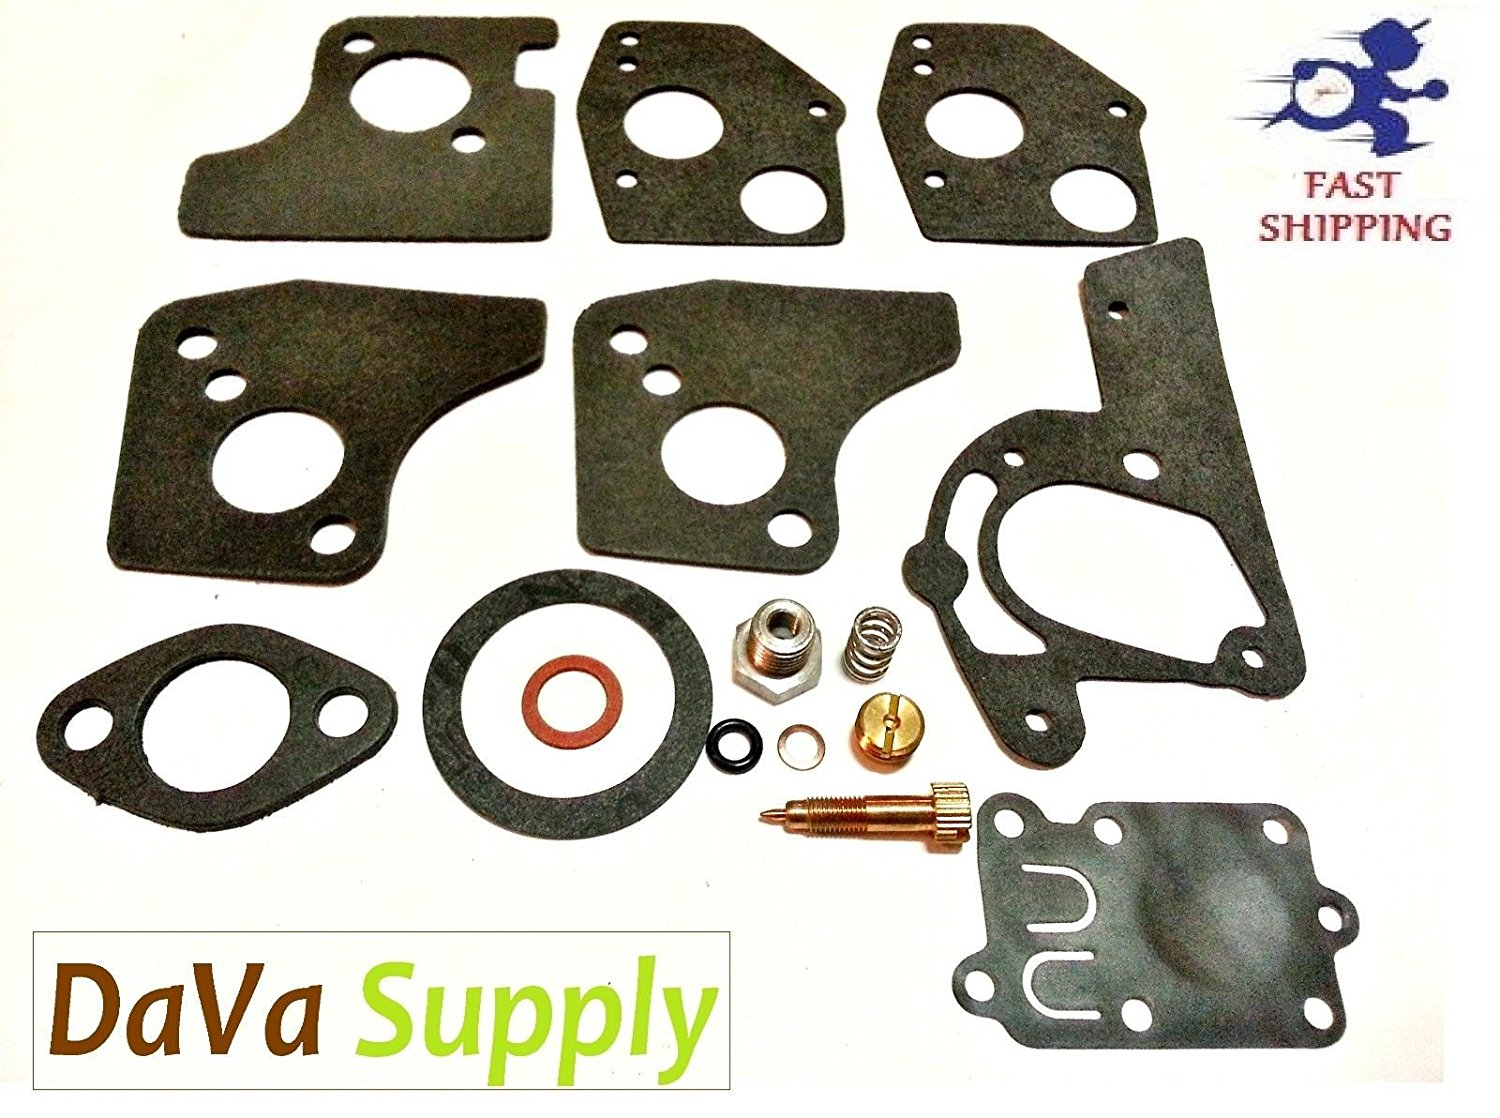 CARBURETOR OVERHAUL REBUILD / REPAIR KIT for Briggs & Stratton 494624, 495606 ;(from_dava_supply